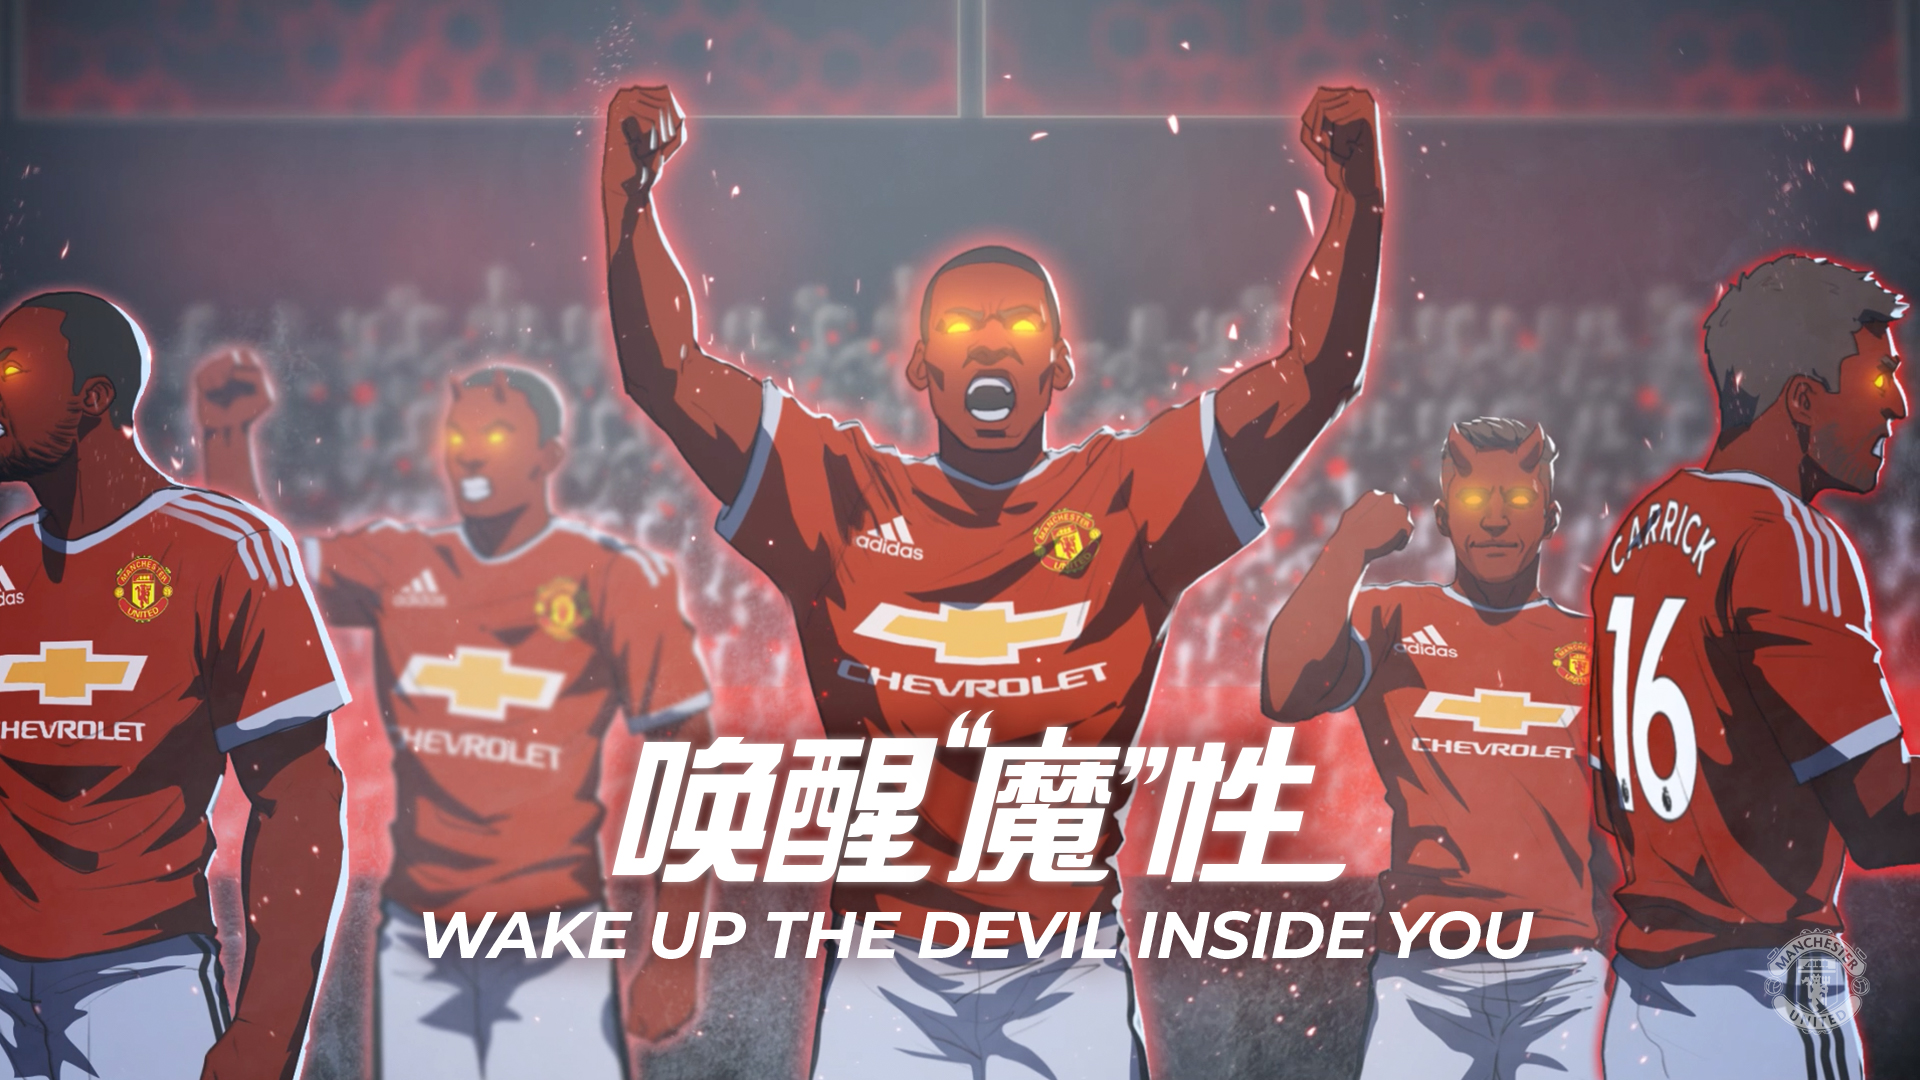 Manchester United ran an online campaign in China (Manchester United)